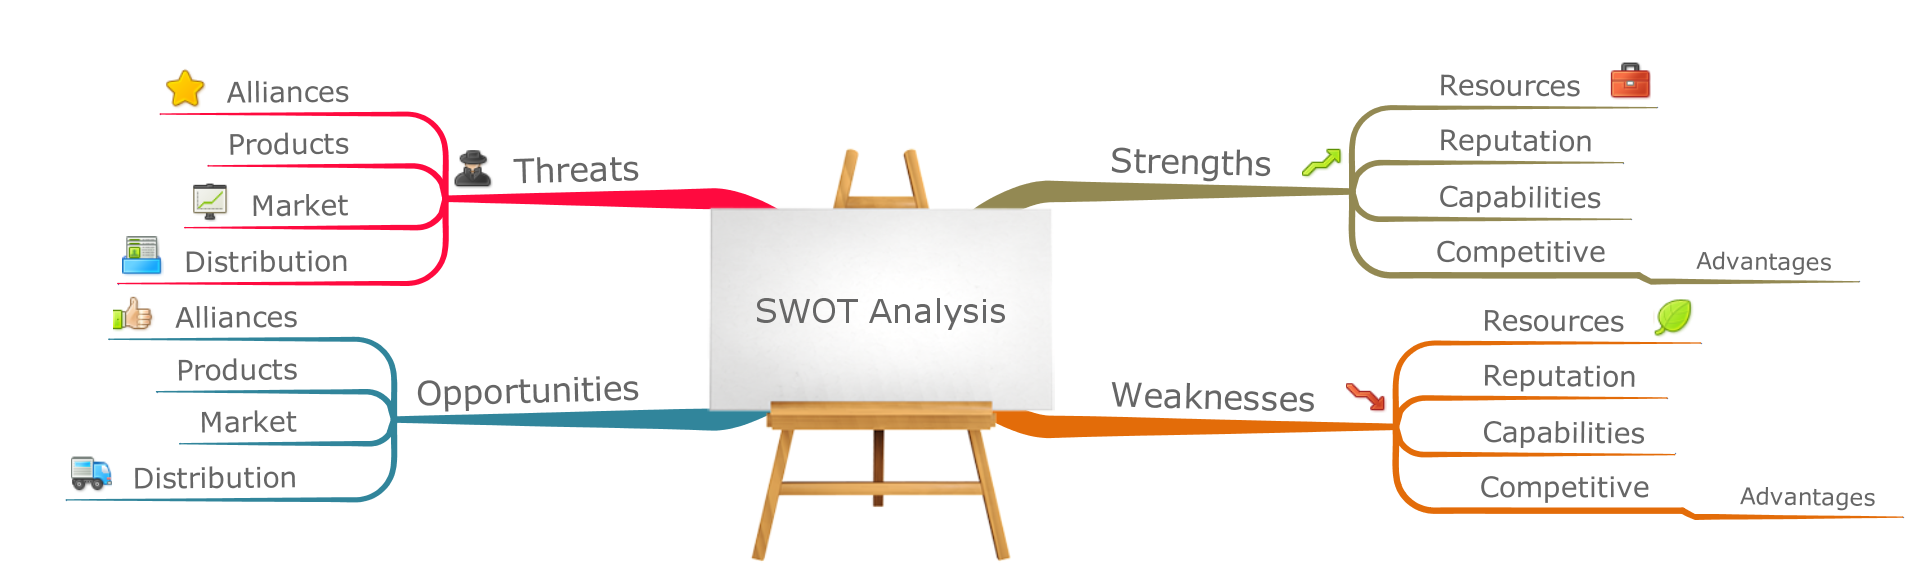 kaiser permanente swot analysis